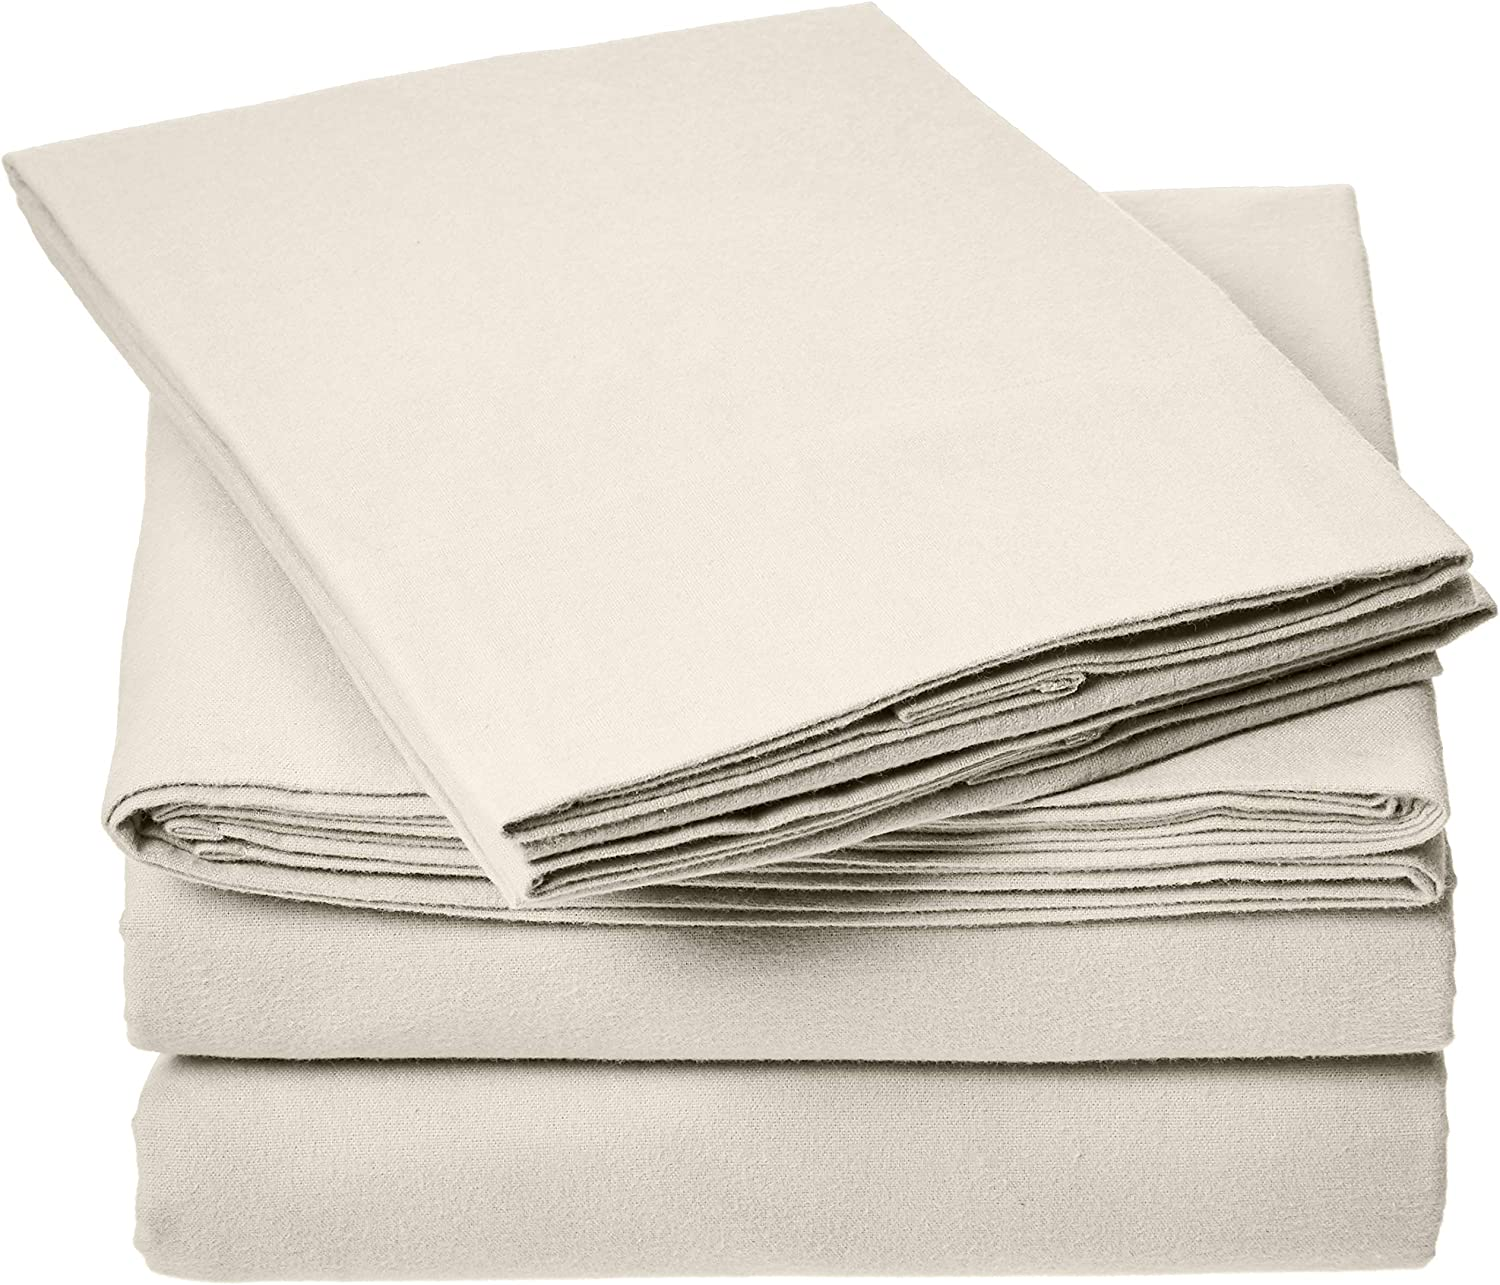 AmazonBasics Everyday Flannel Bed Sheet Set - King, Beige